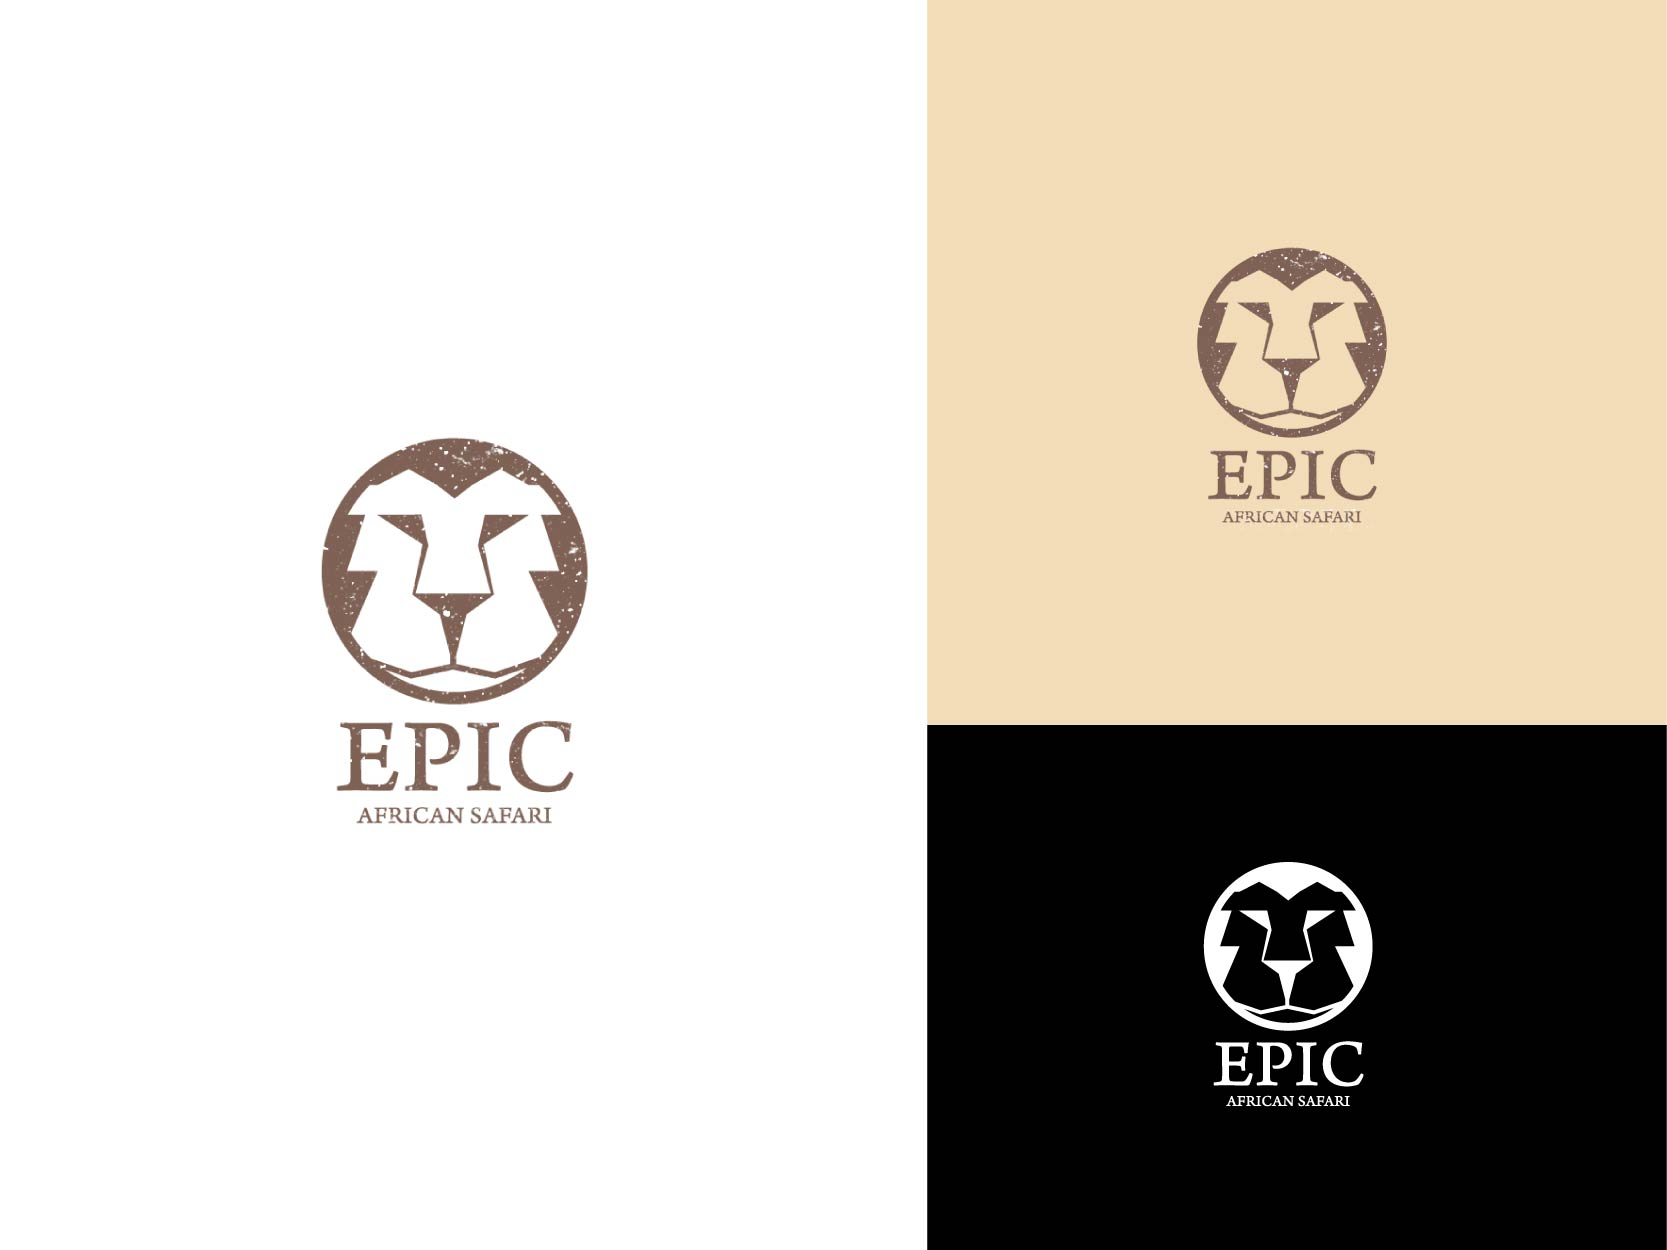 Logo Design by Osi Indra - Entry No. 40 in the Logo Design Contest Epic logo design.